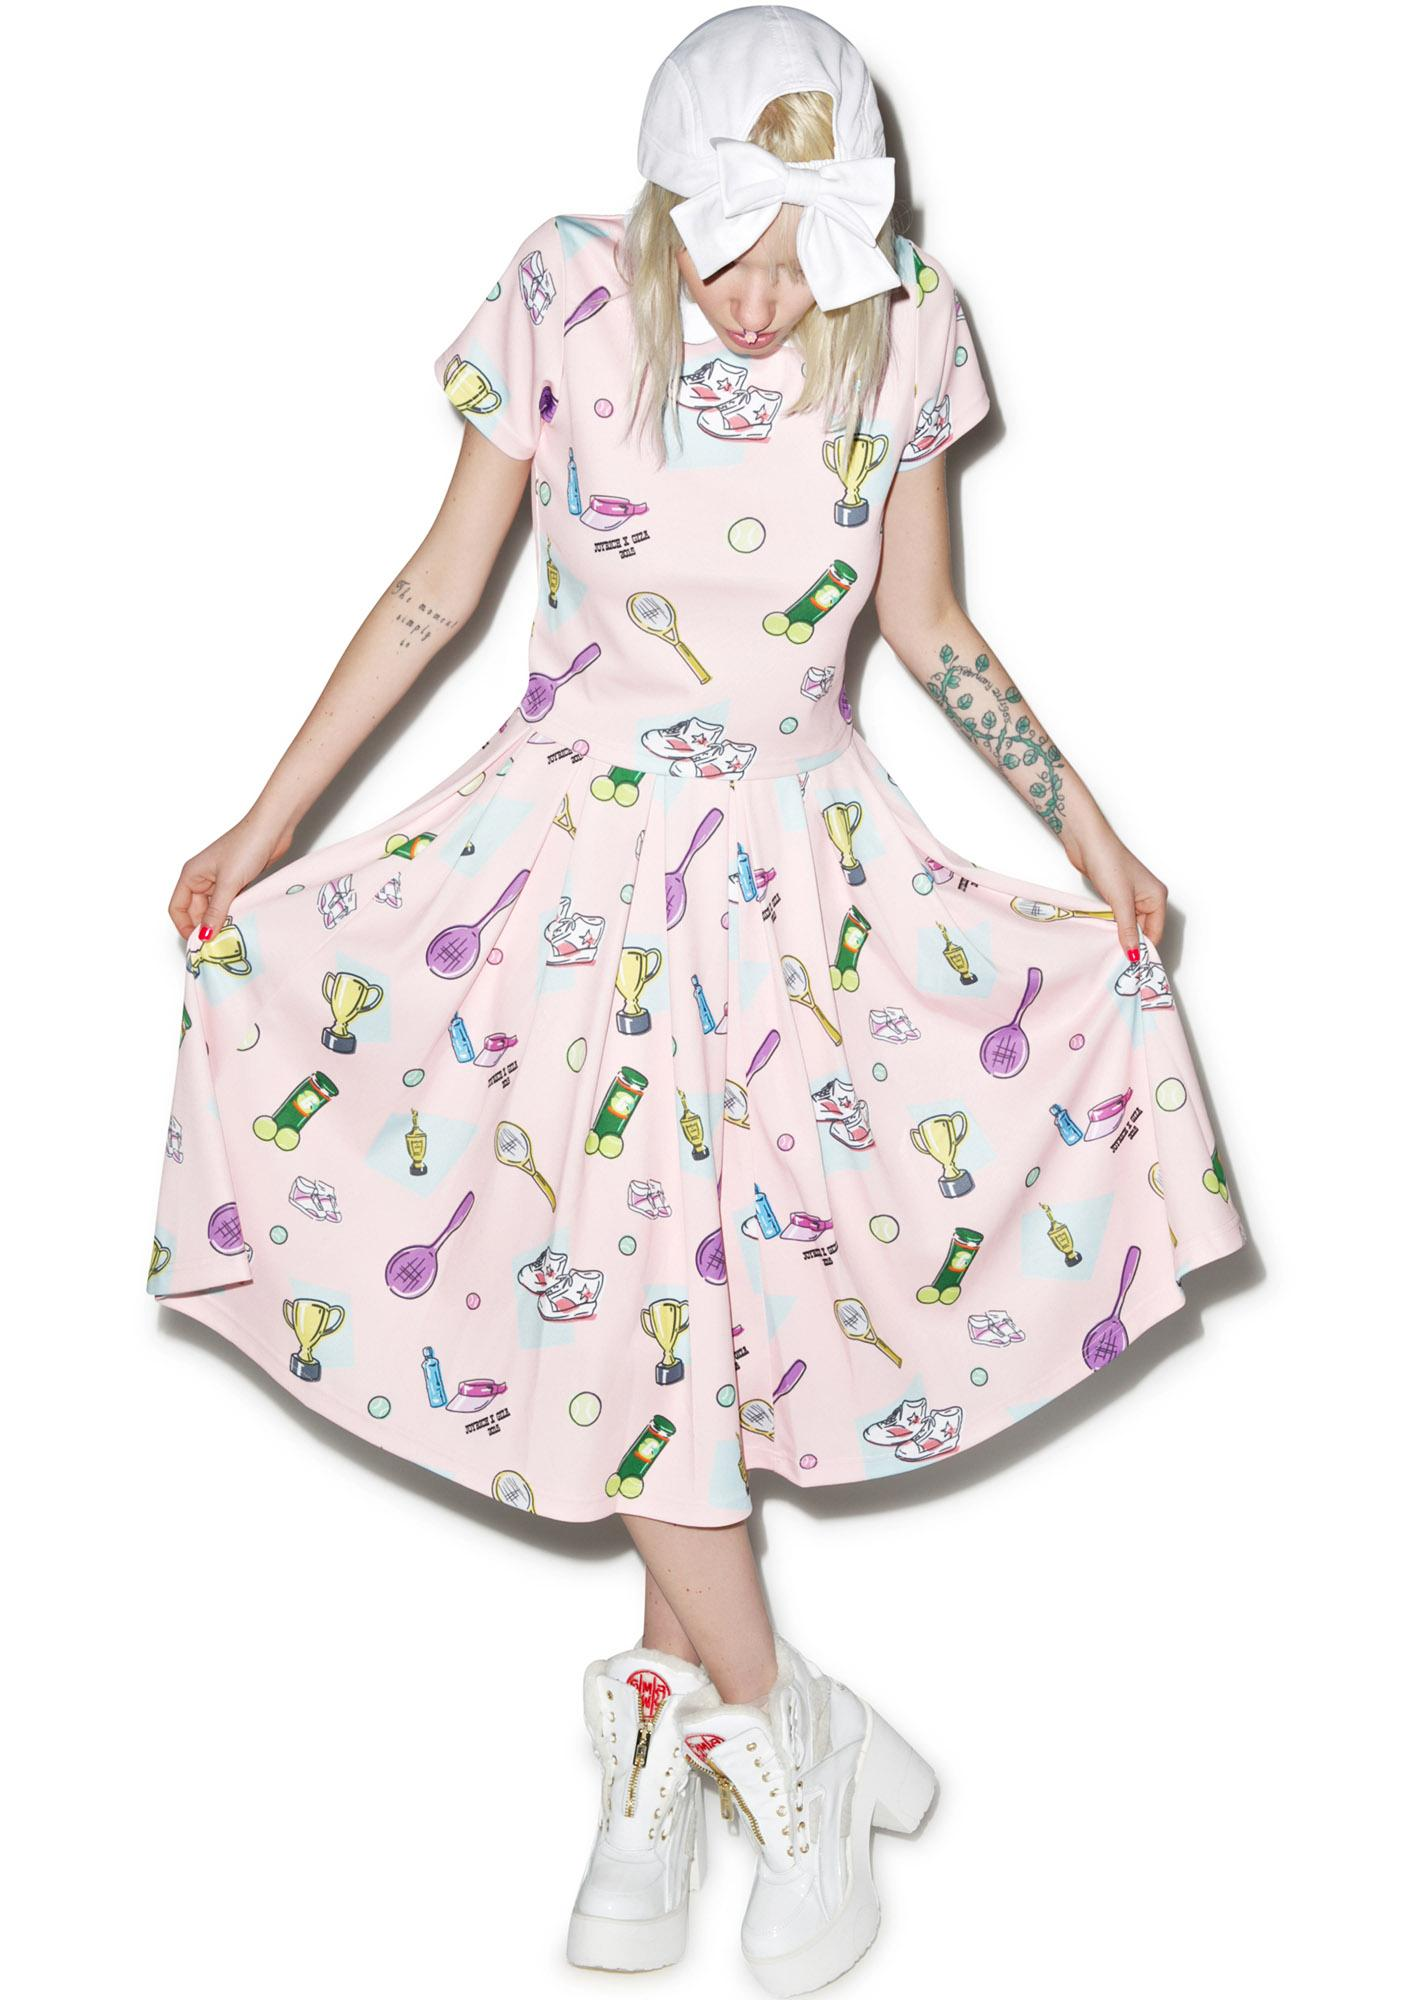 Joyrich X Giza Tennis Club Retro Skirt